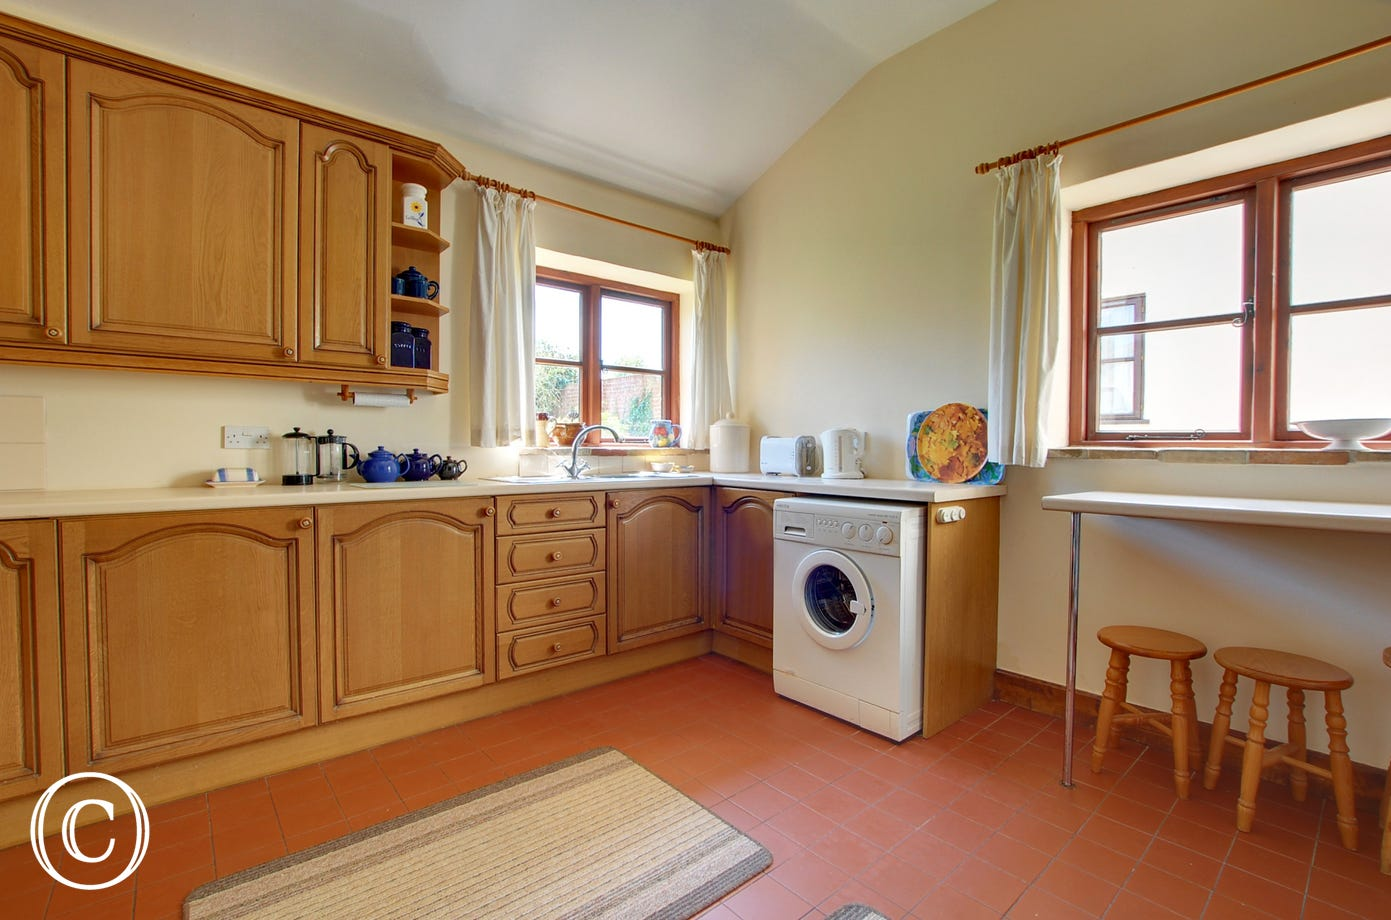 Bright, spacious, country style kitchen with the added bonus of a ground floor cloakroom